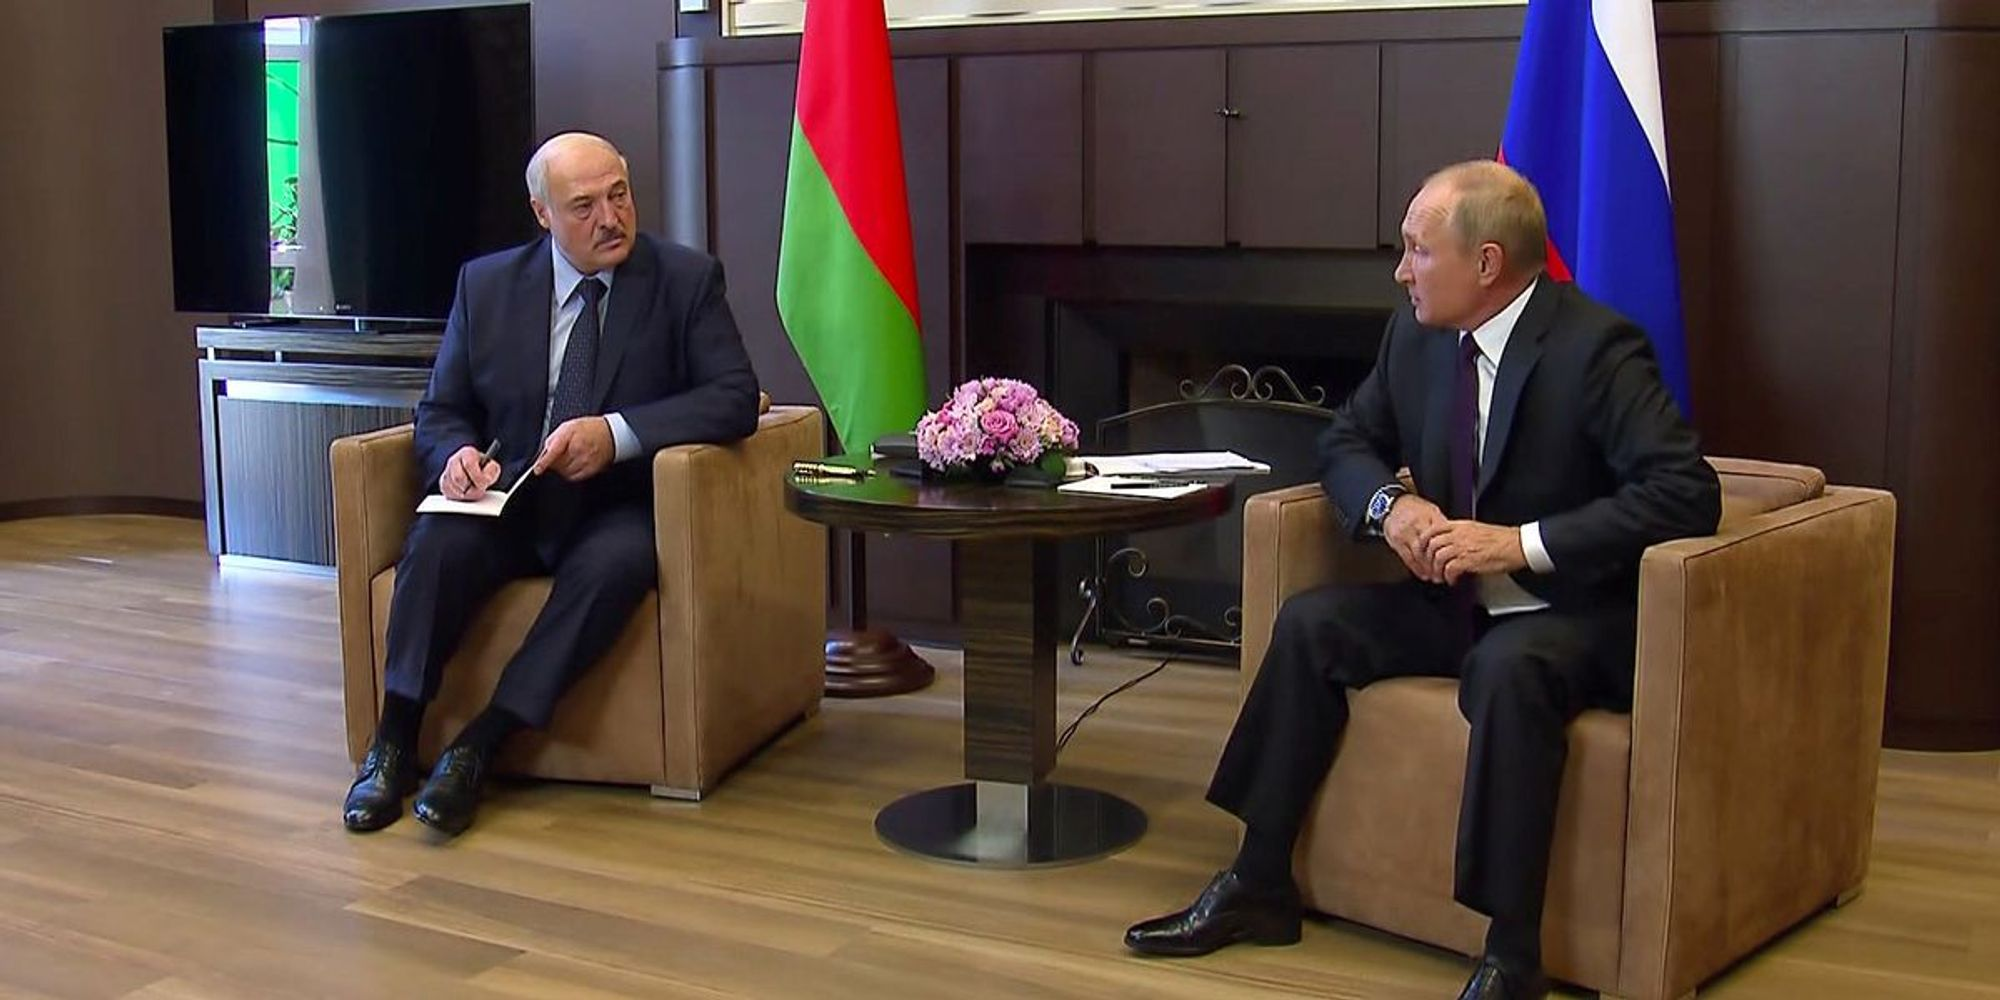 What We're Watching: Putin's Belarus play, Ivory Coast election ruling, historic Asian recession